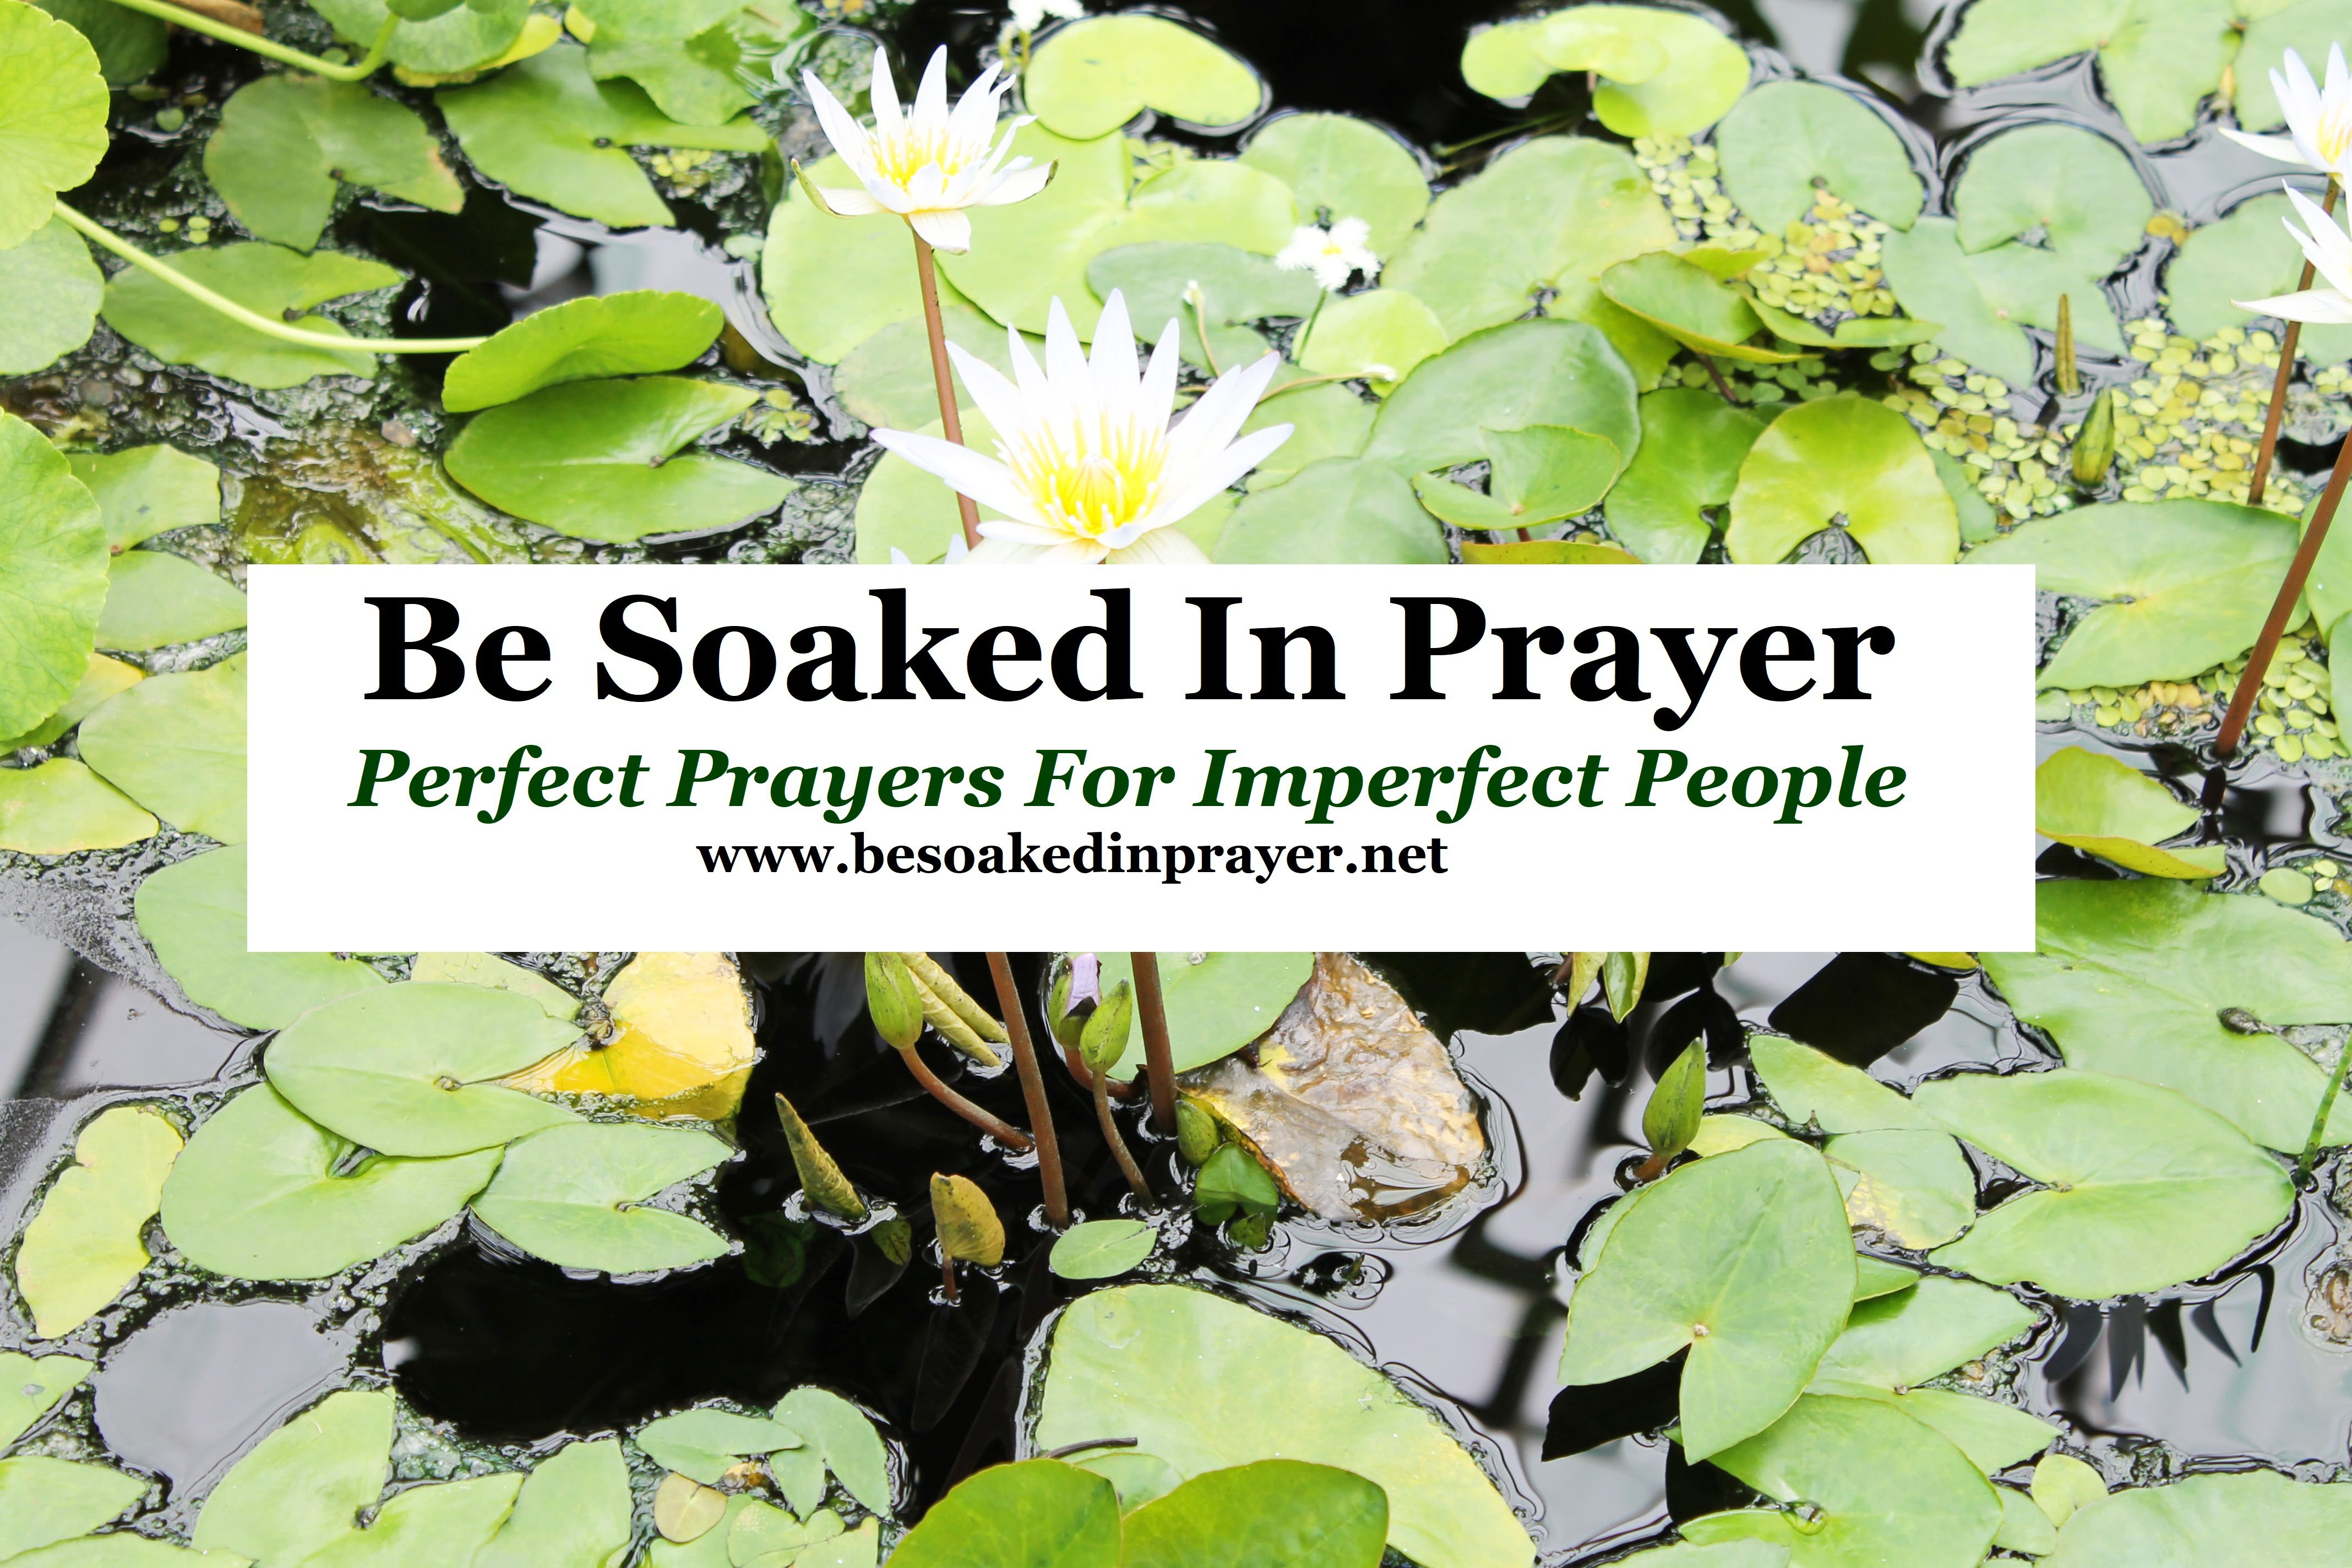 Be Soaked In Prayer